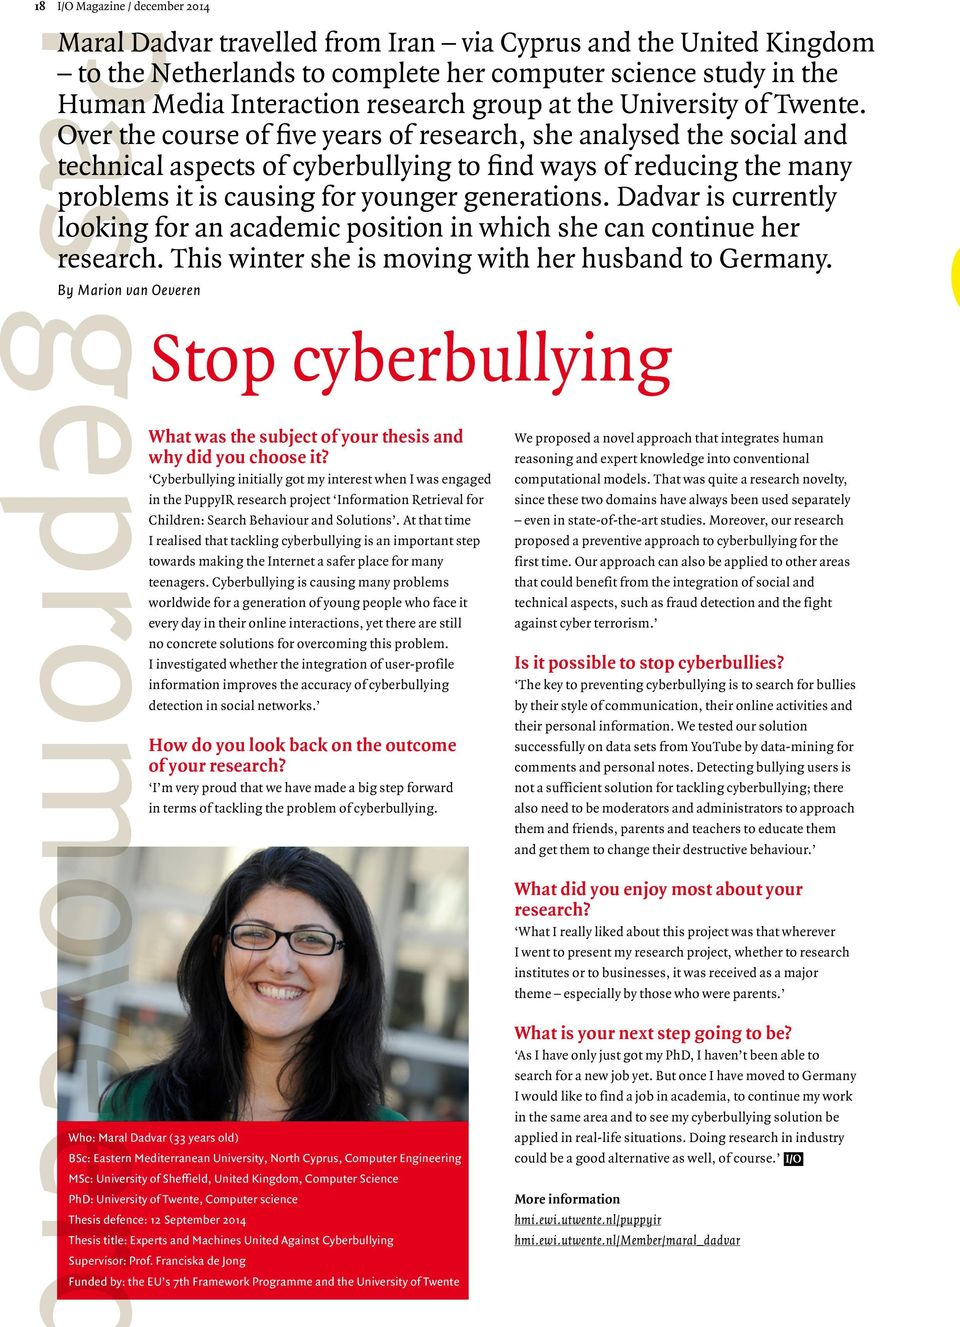 Over the course of five years of research, she analysed the social and technical aspects of cyberbullying to find ways of reducing the many problems it is causing for younger generations.